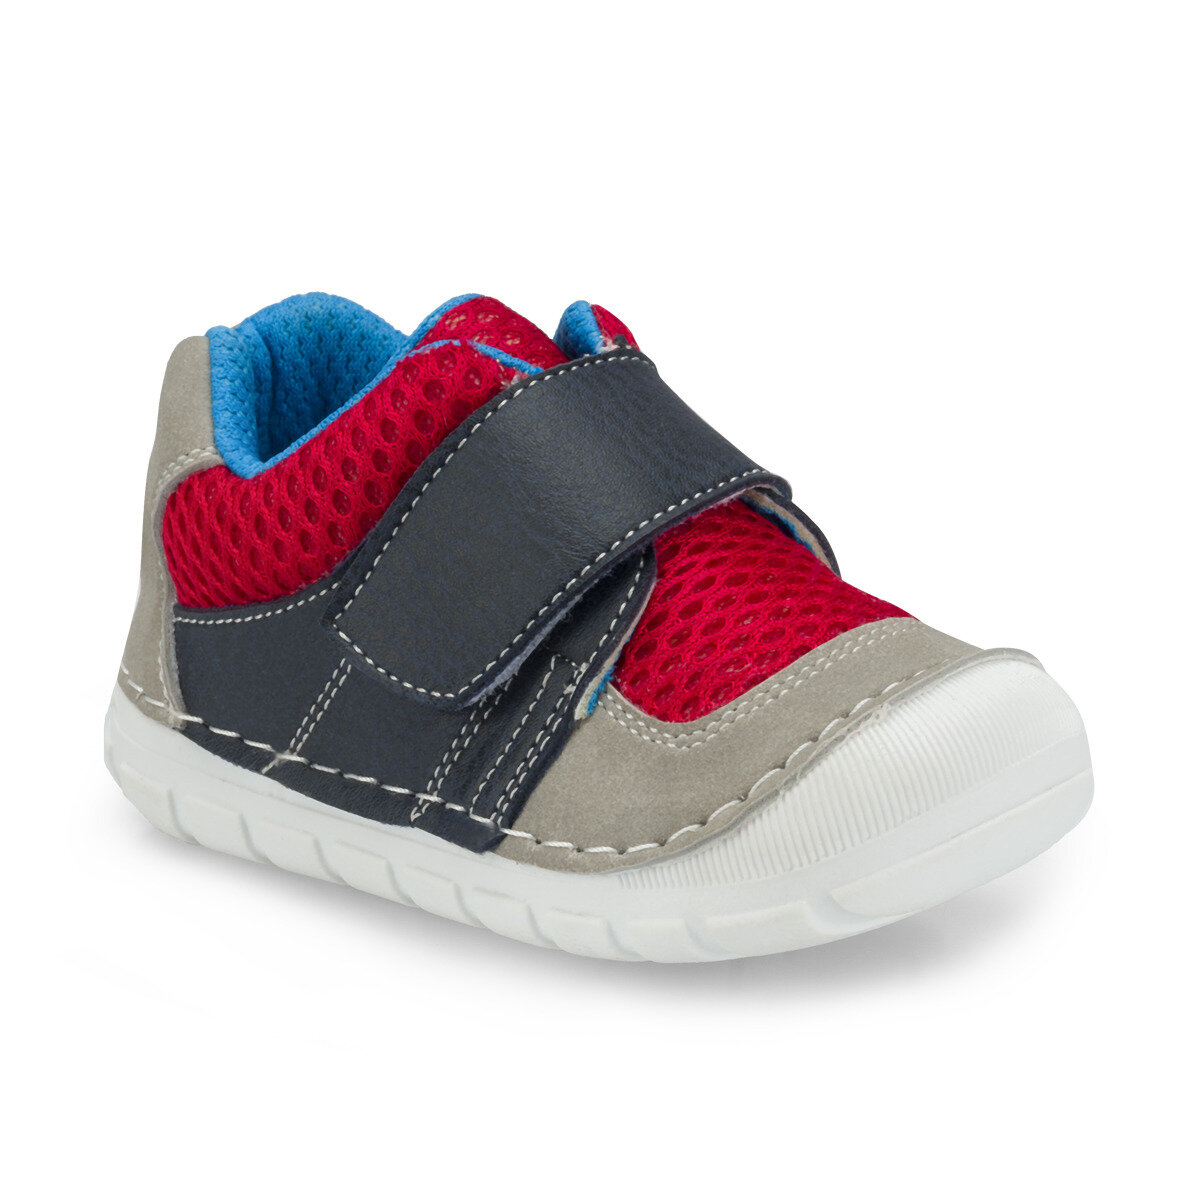 FLO 512206.I Red Male Child Sneaker Shoes Polaris